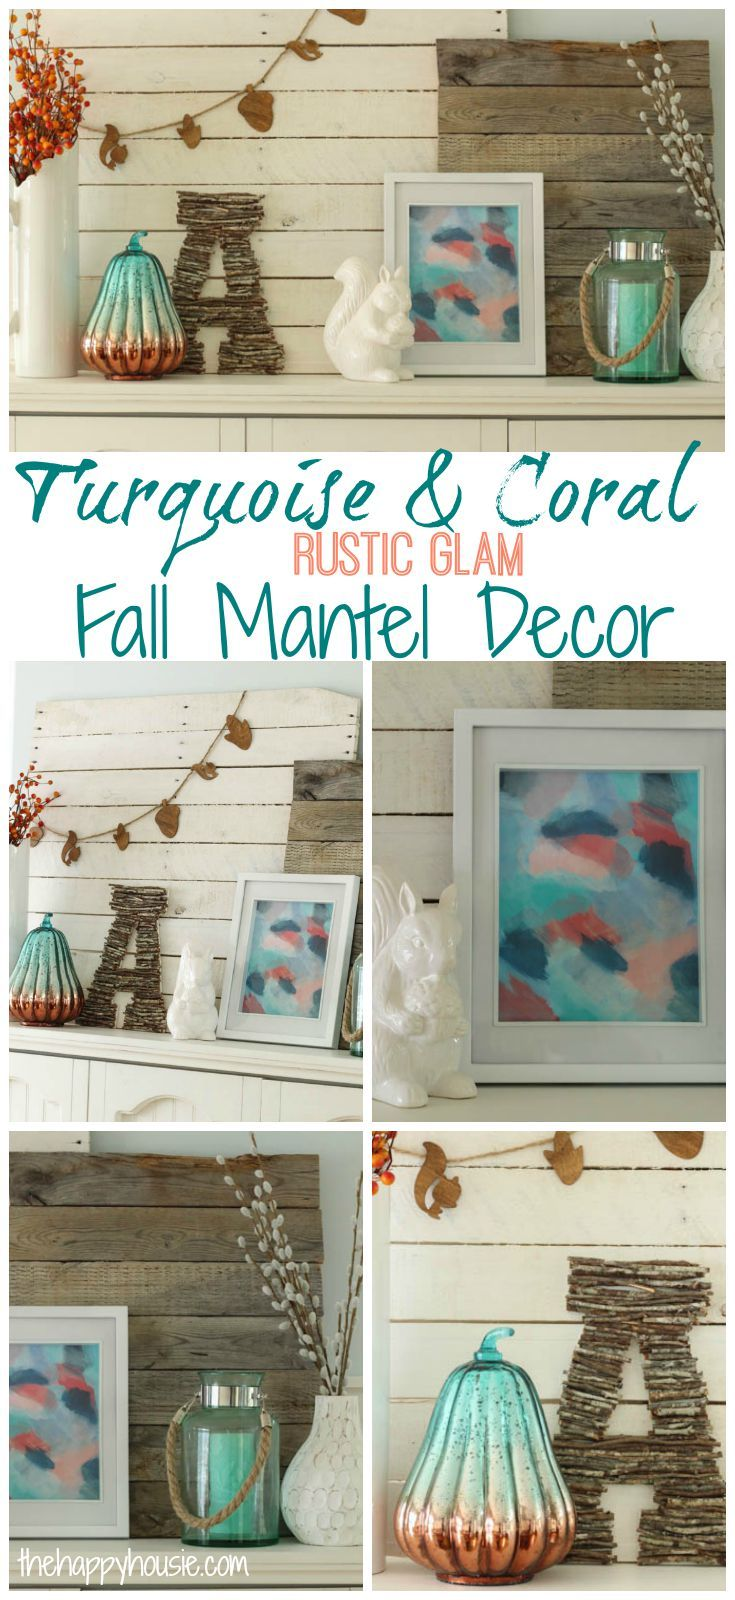 Super simple Fall décor with this turquoise and coral Fall Mantel using a combination of rustic and glam elements.